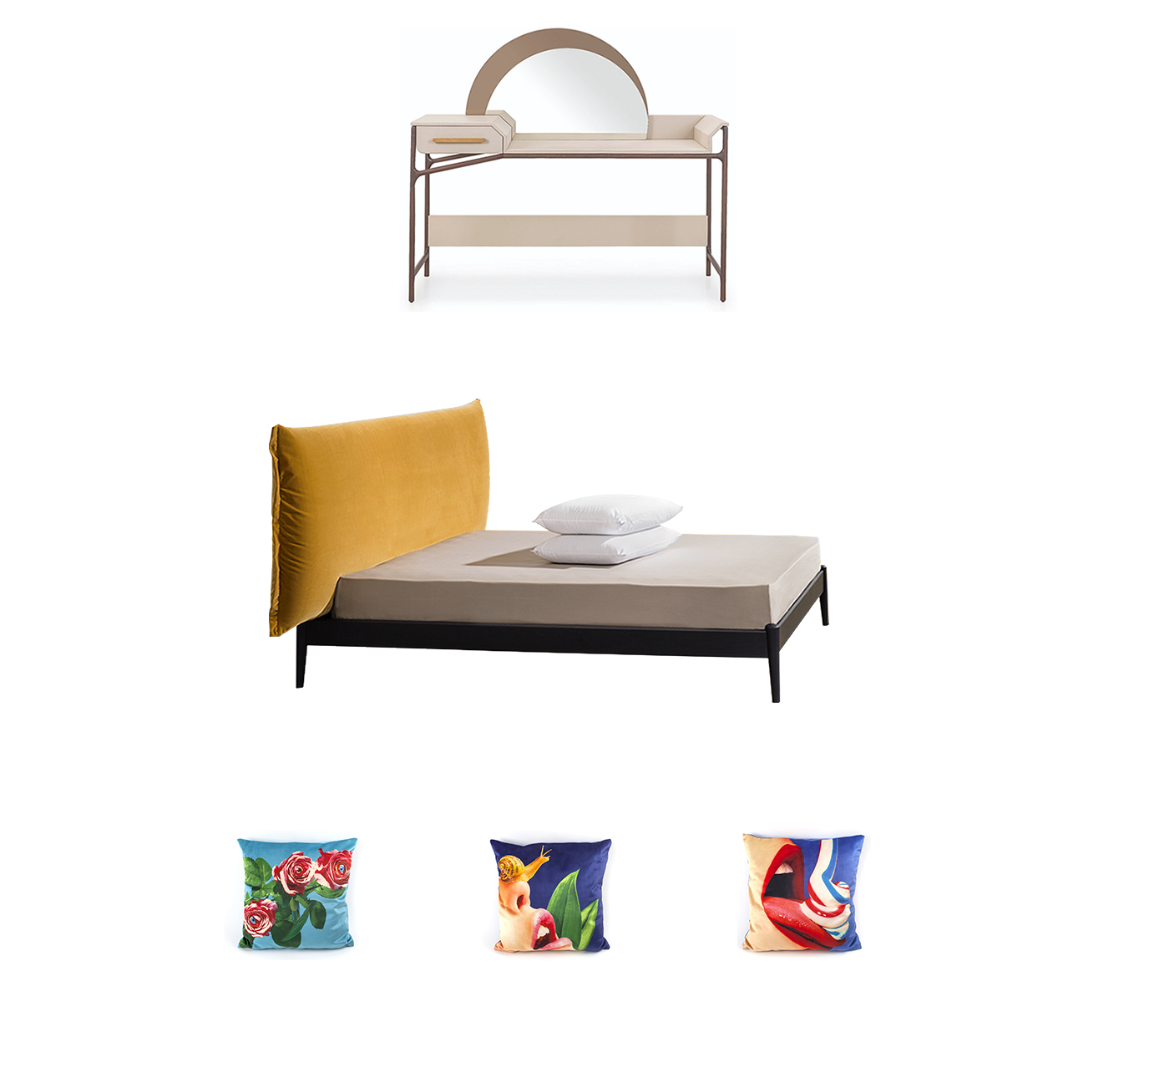 Miniforms Shiko Wonder Bed, Seletti Toilet Paper Cushions